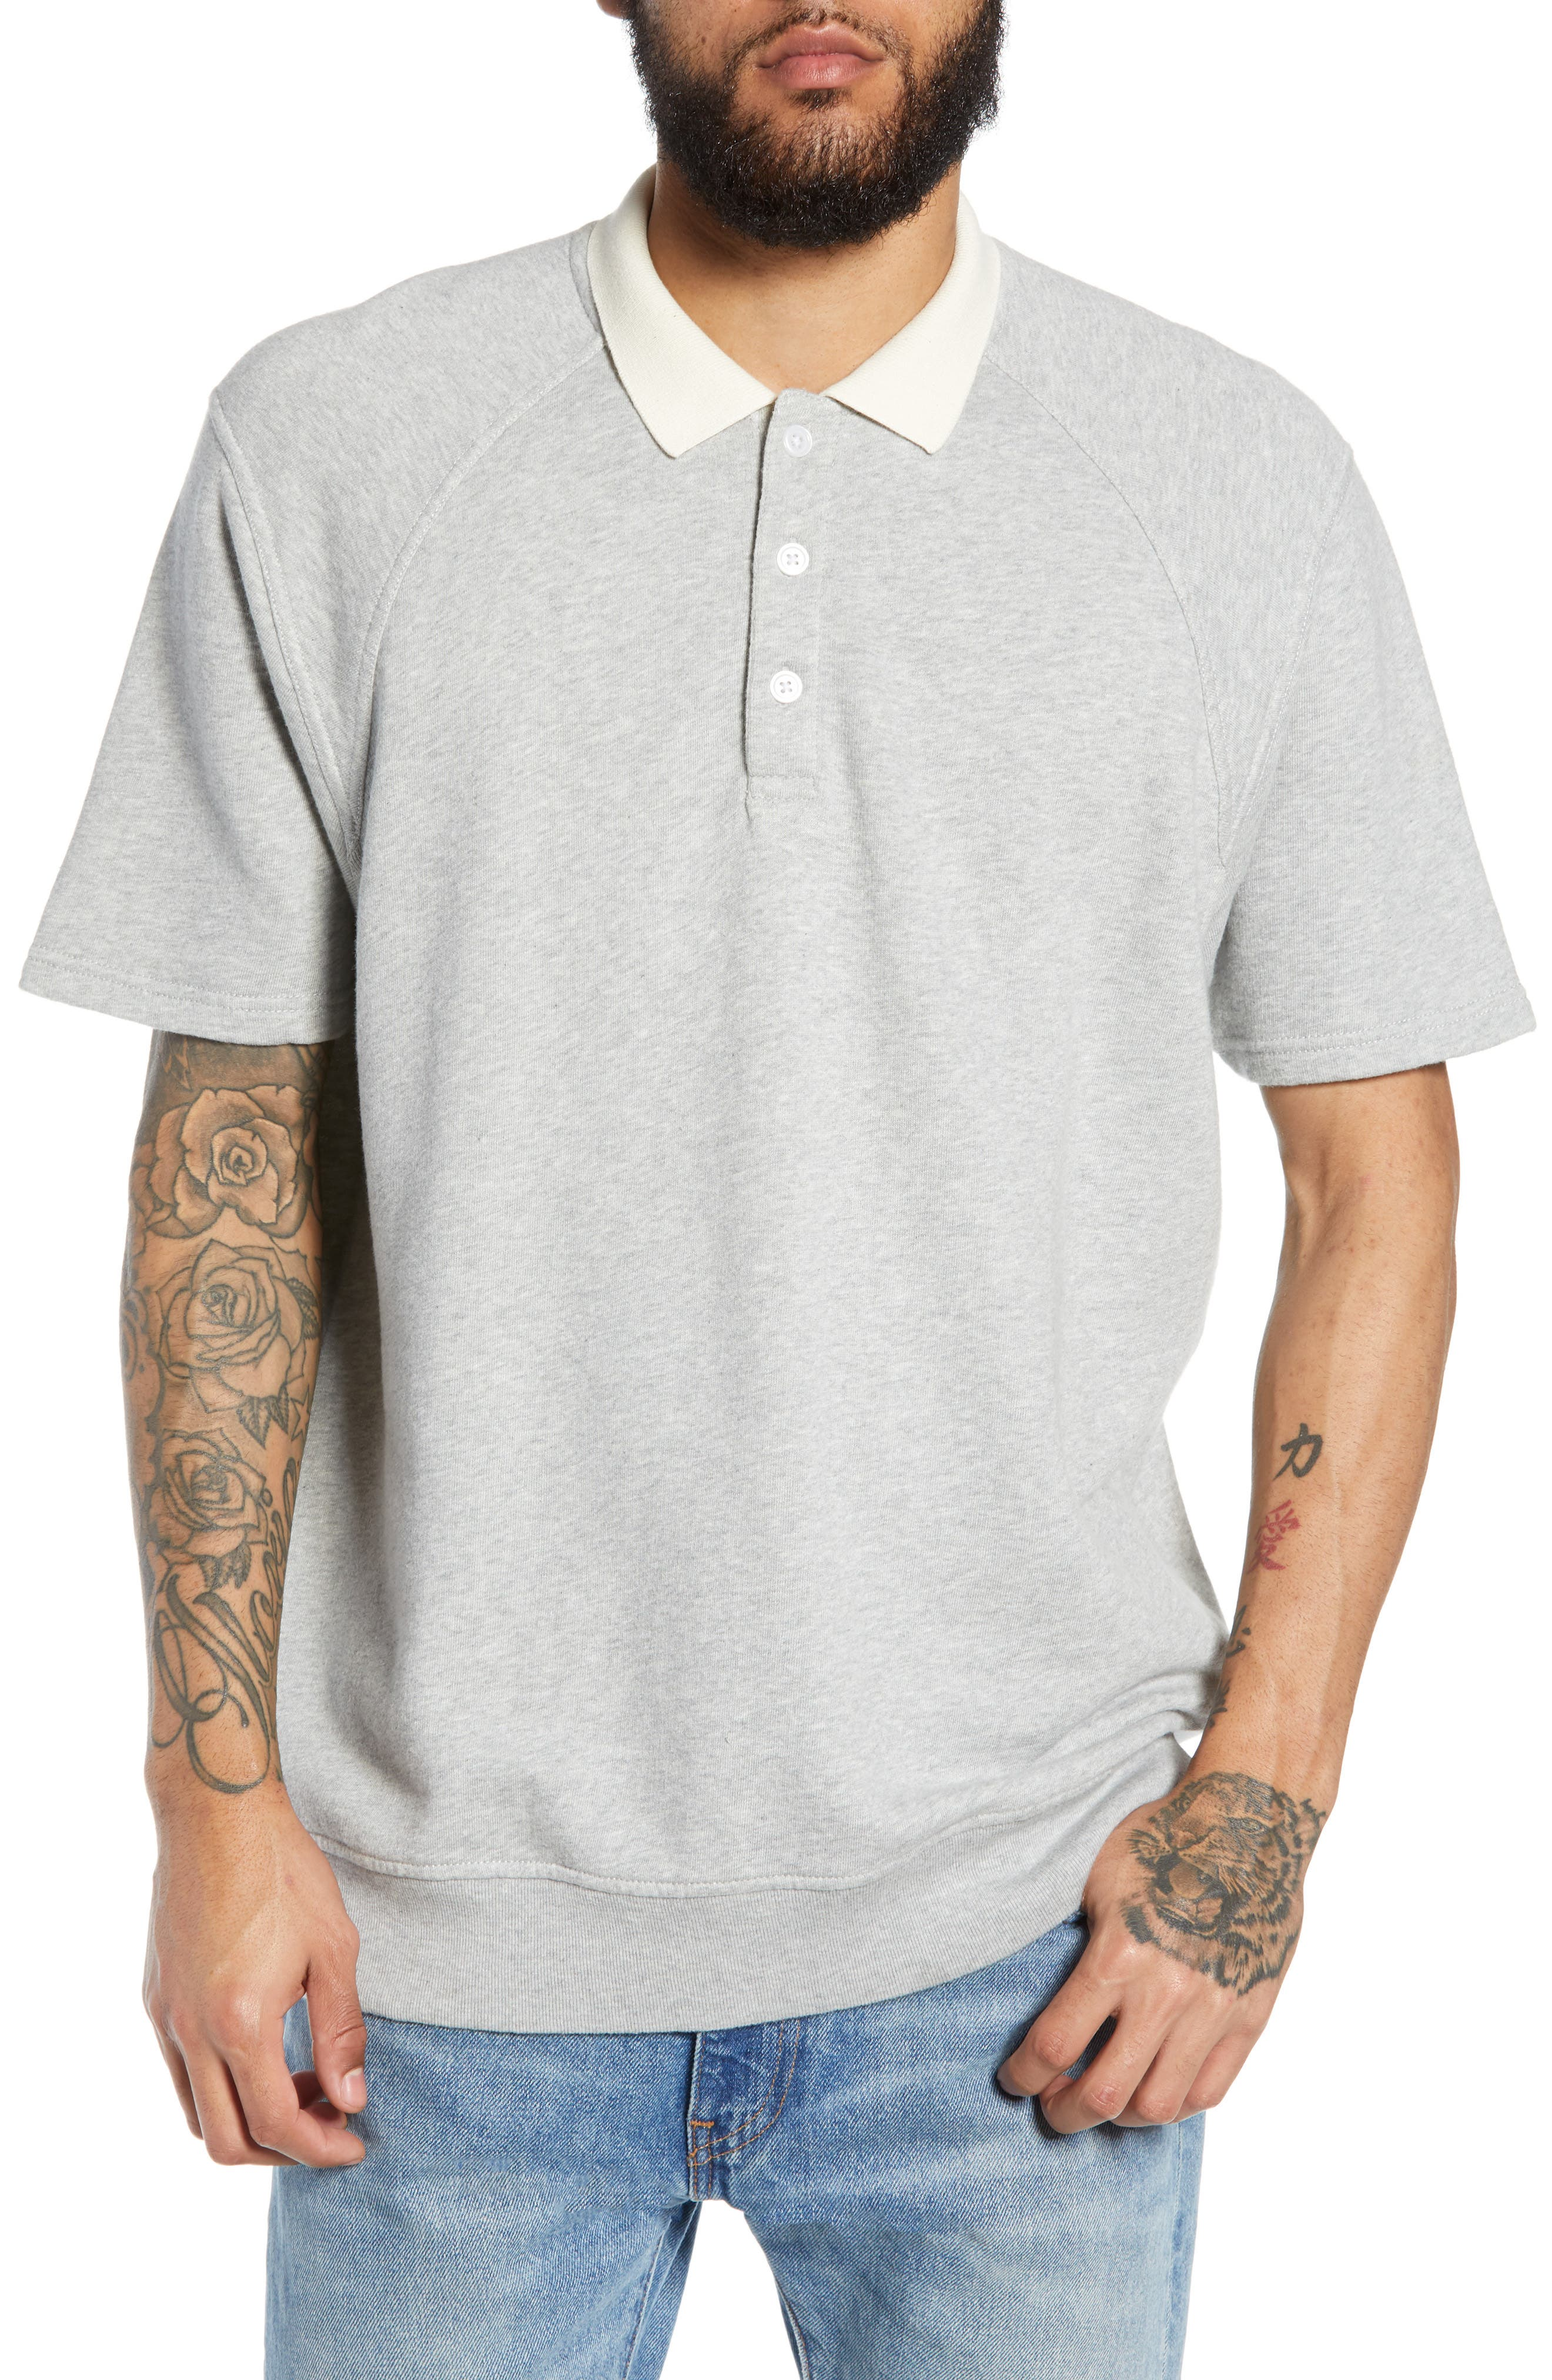 THE RAIL Short Sleeve Rugby Shirt, Main, color, GREY ASH HEATHER